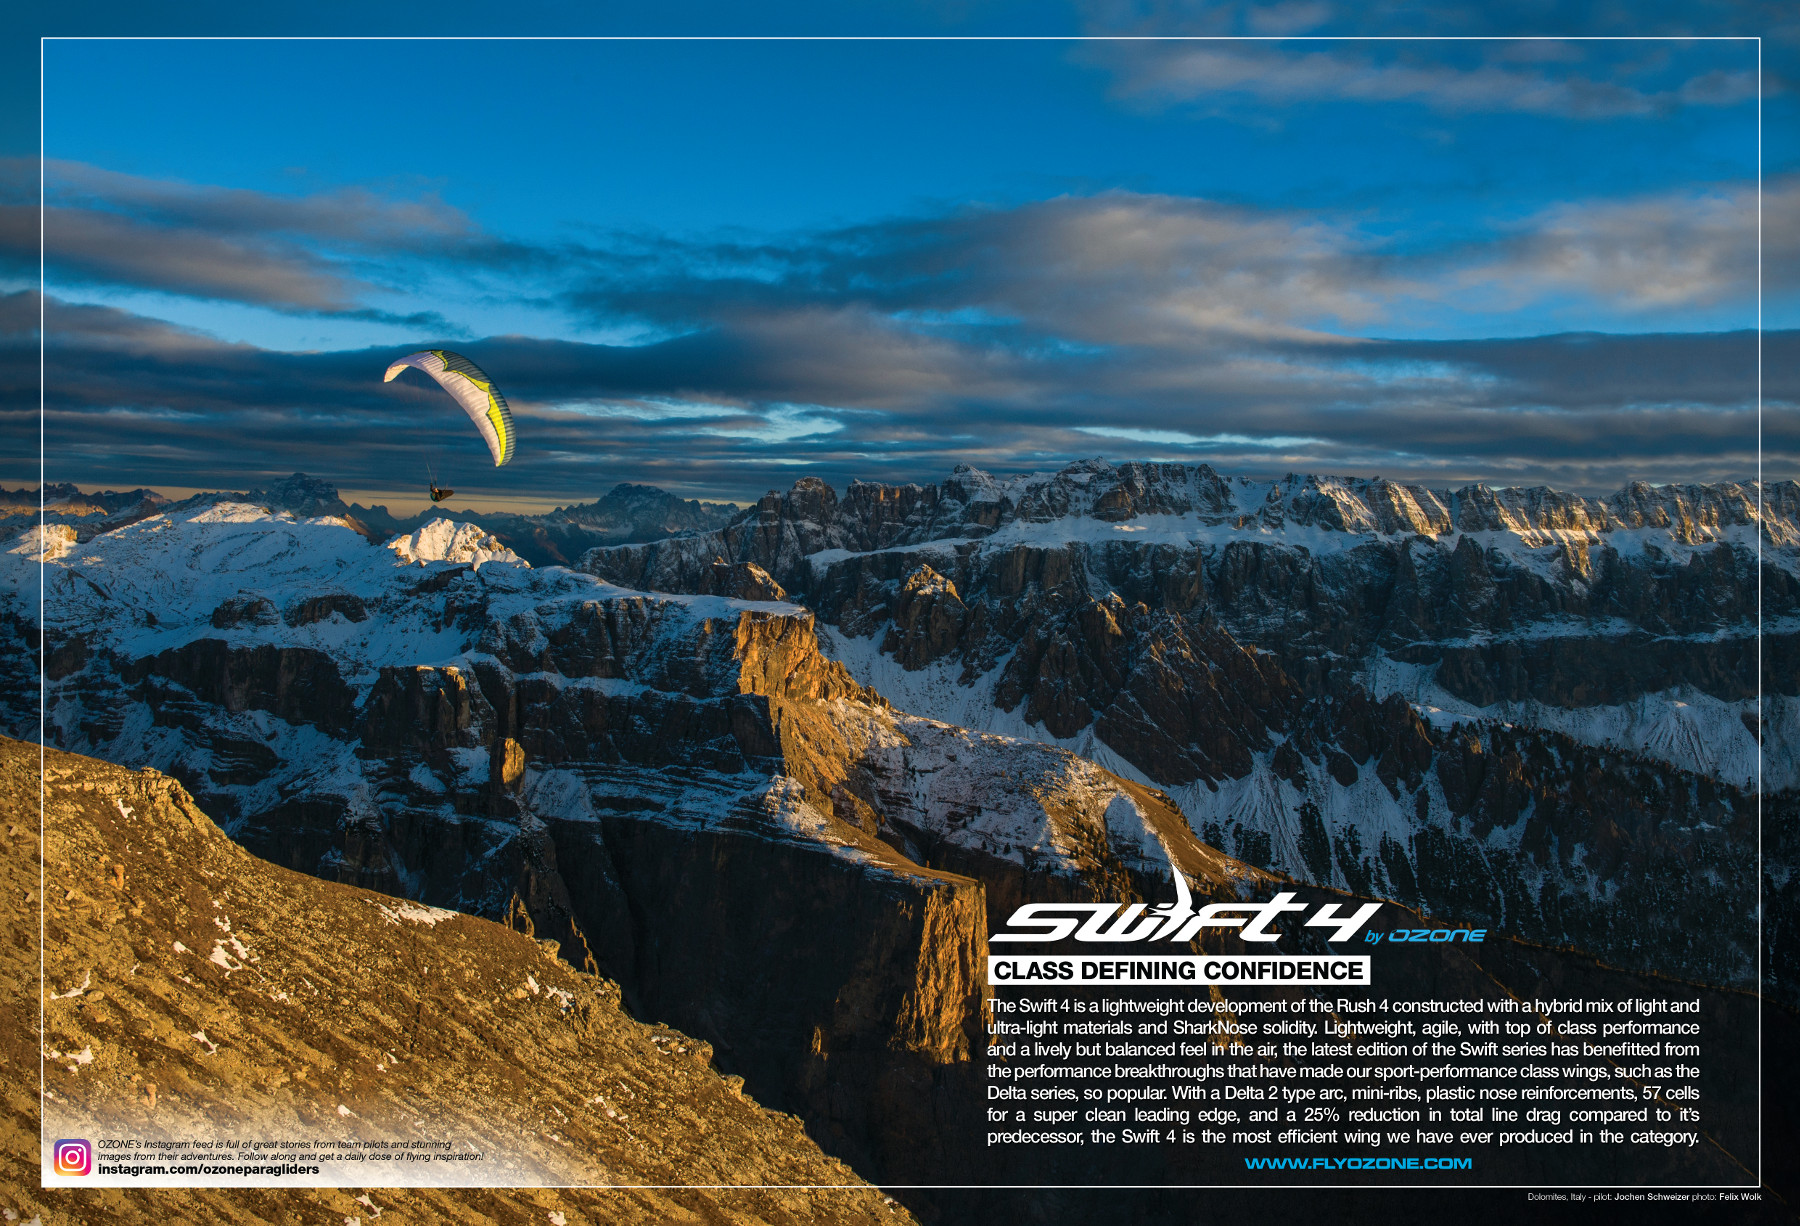 xcountry-174-ozone-swift-4-double-page-ad-vprint-2